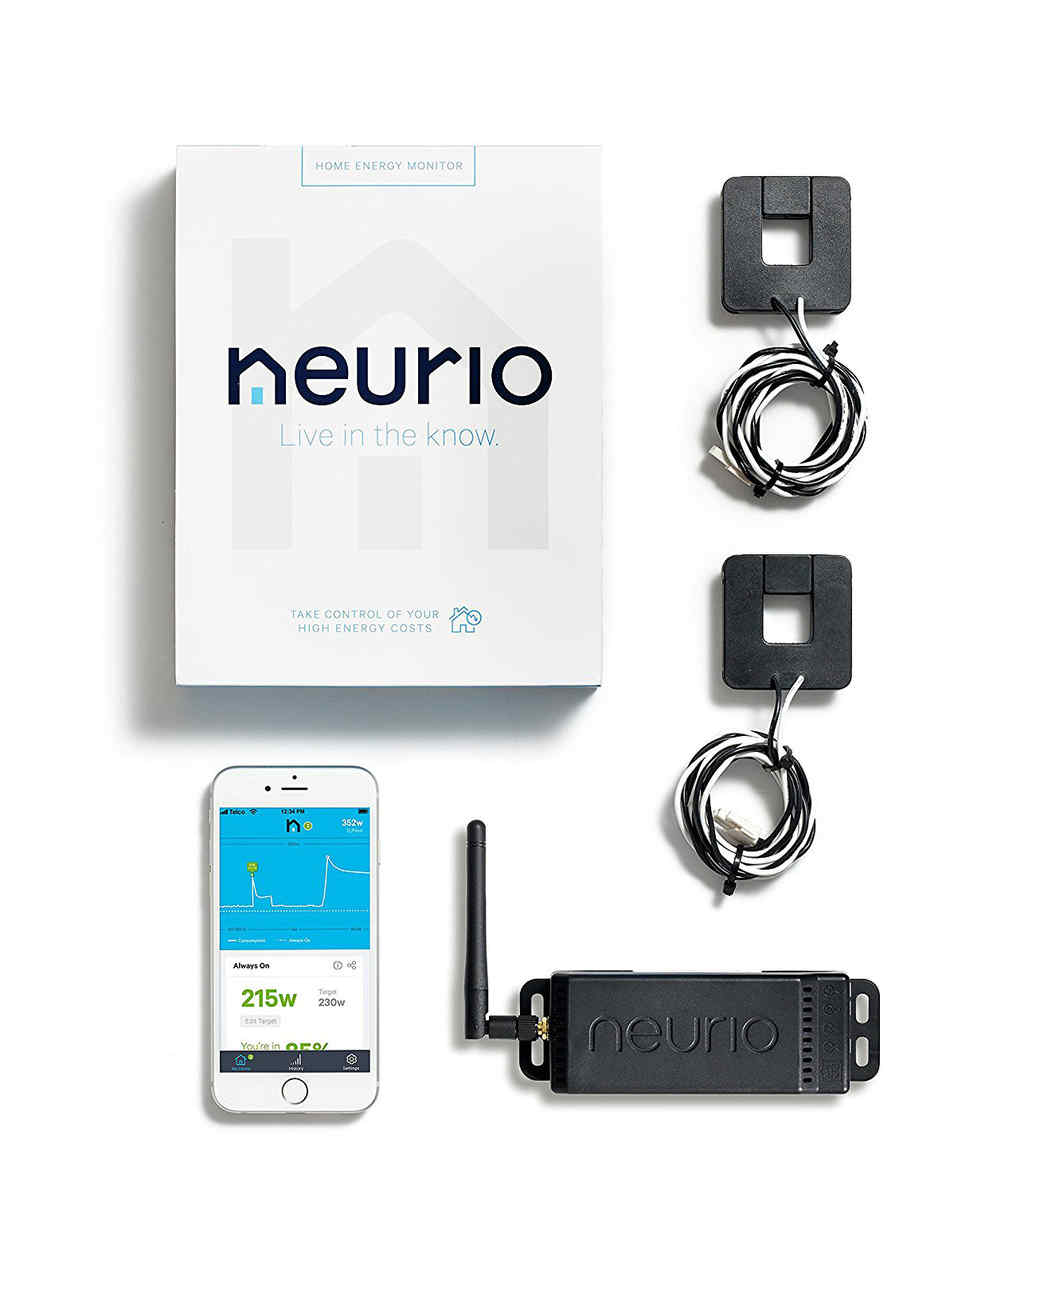 Neurio Home Energy Monitor